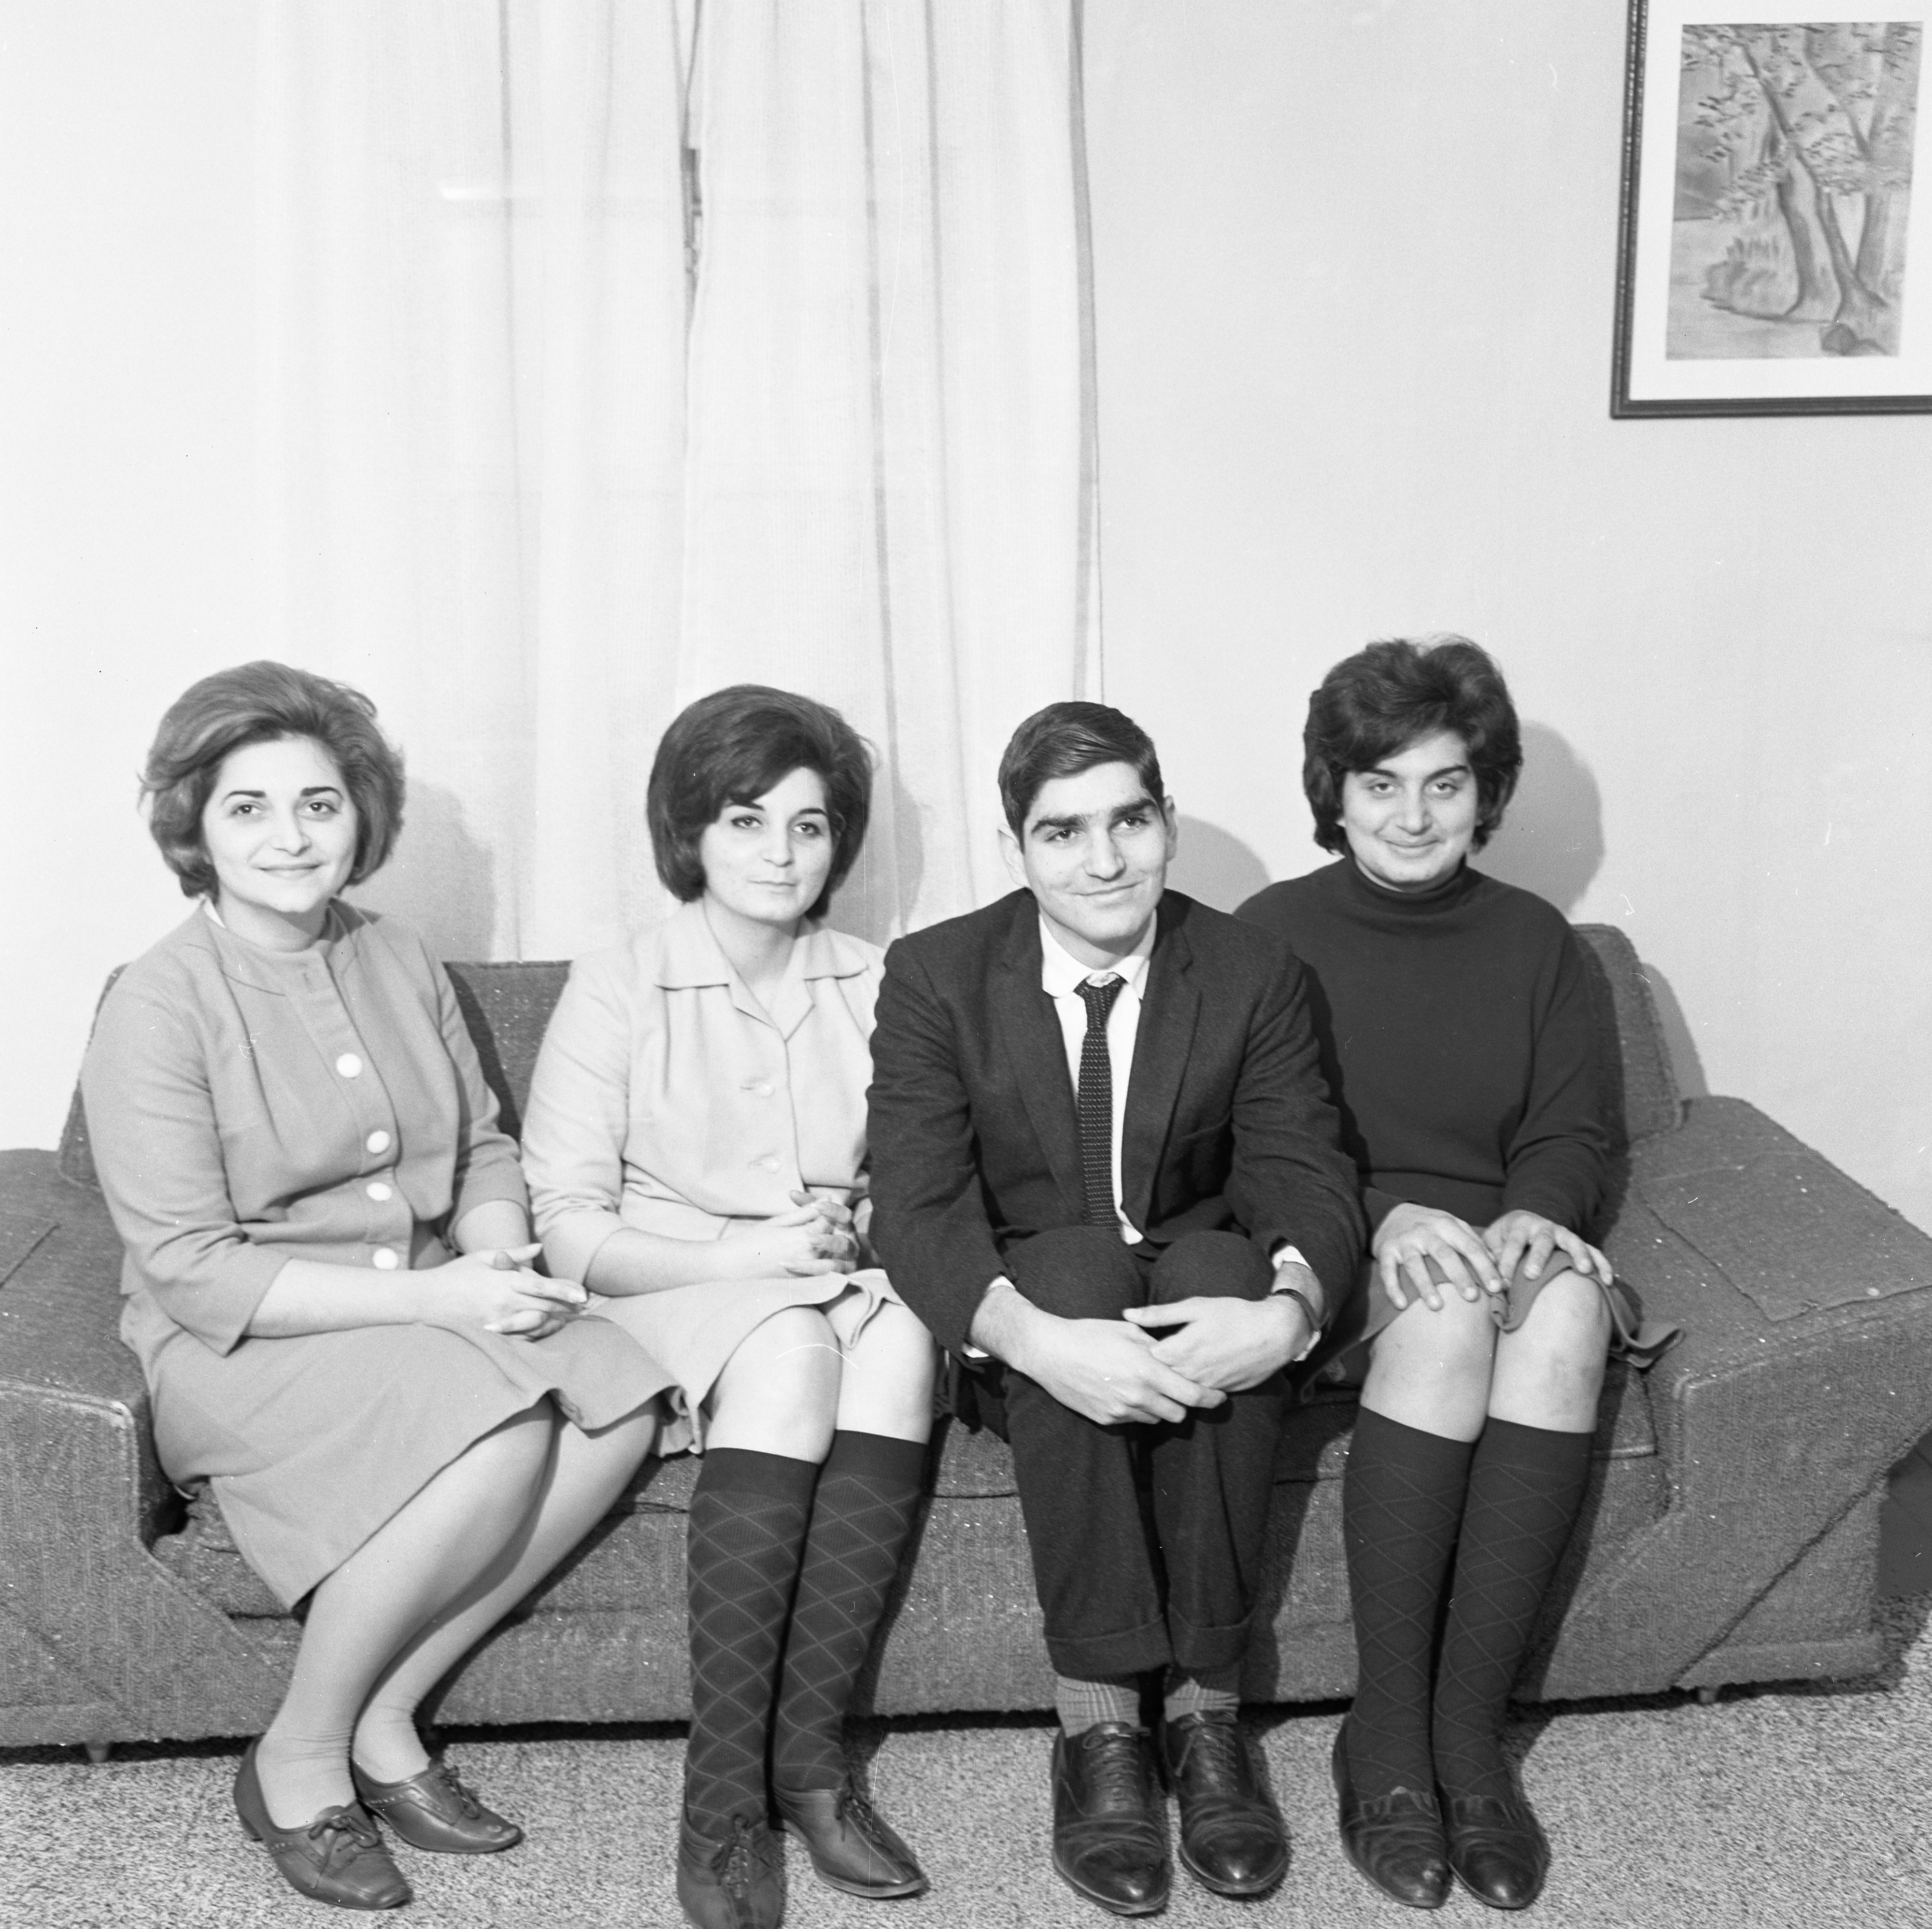 The Fornes Family, Cuban Refugees, In Their New Ann Arbor Home, December 1965 image